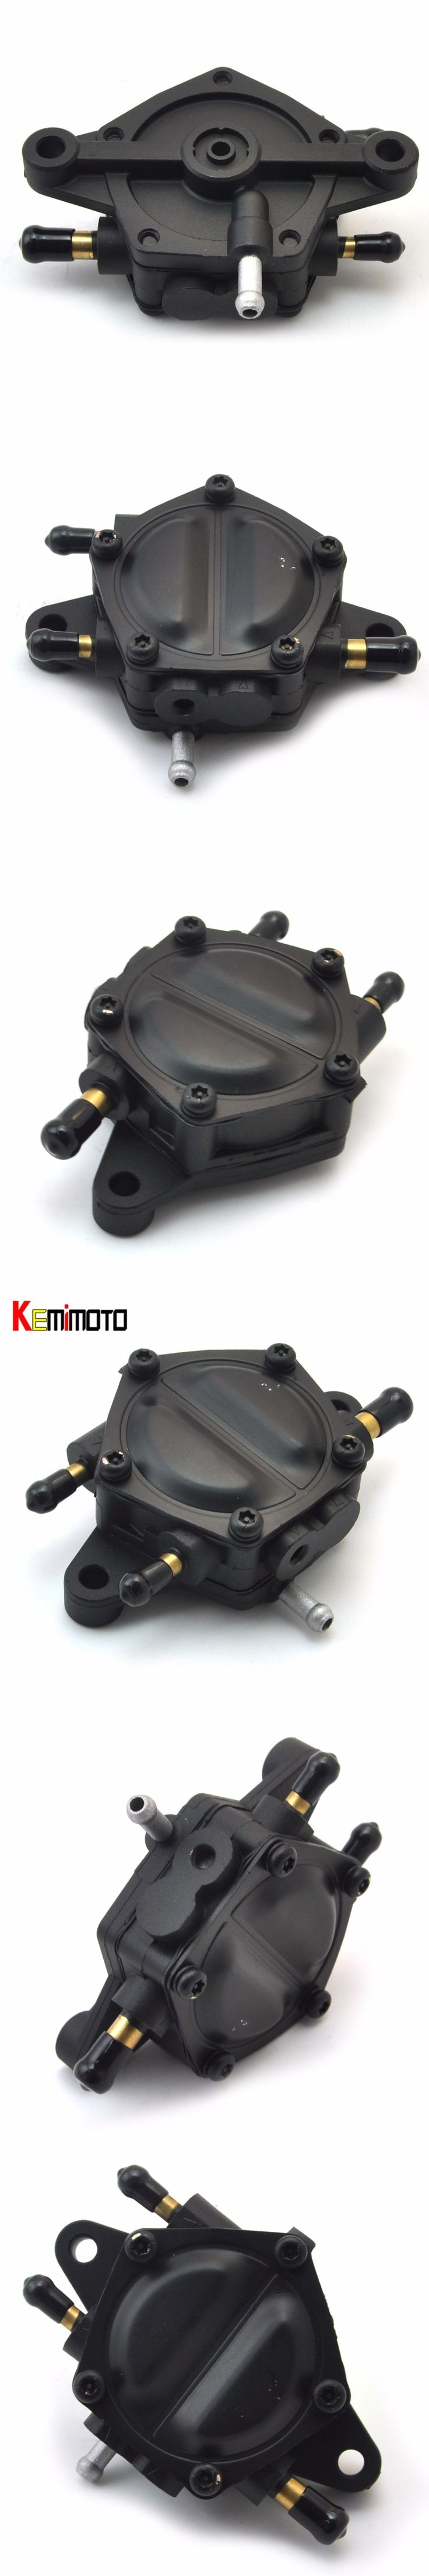 KEMiMOTO Fuel Pump oil for Yamaha Rhino 450 Rhino 660 Replacement Grizzly For Yamaha GRIZZLY 660 4x4 Parts